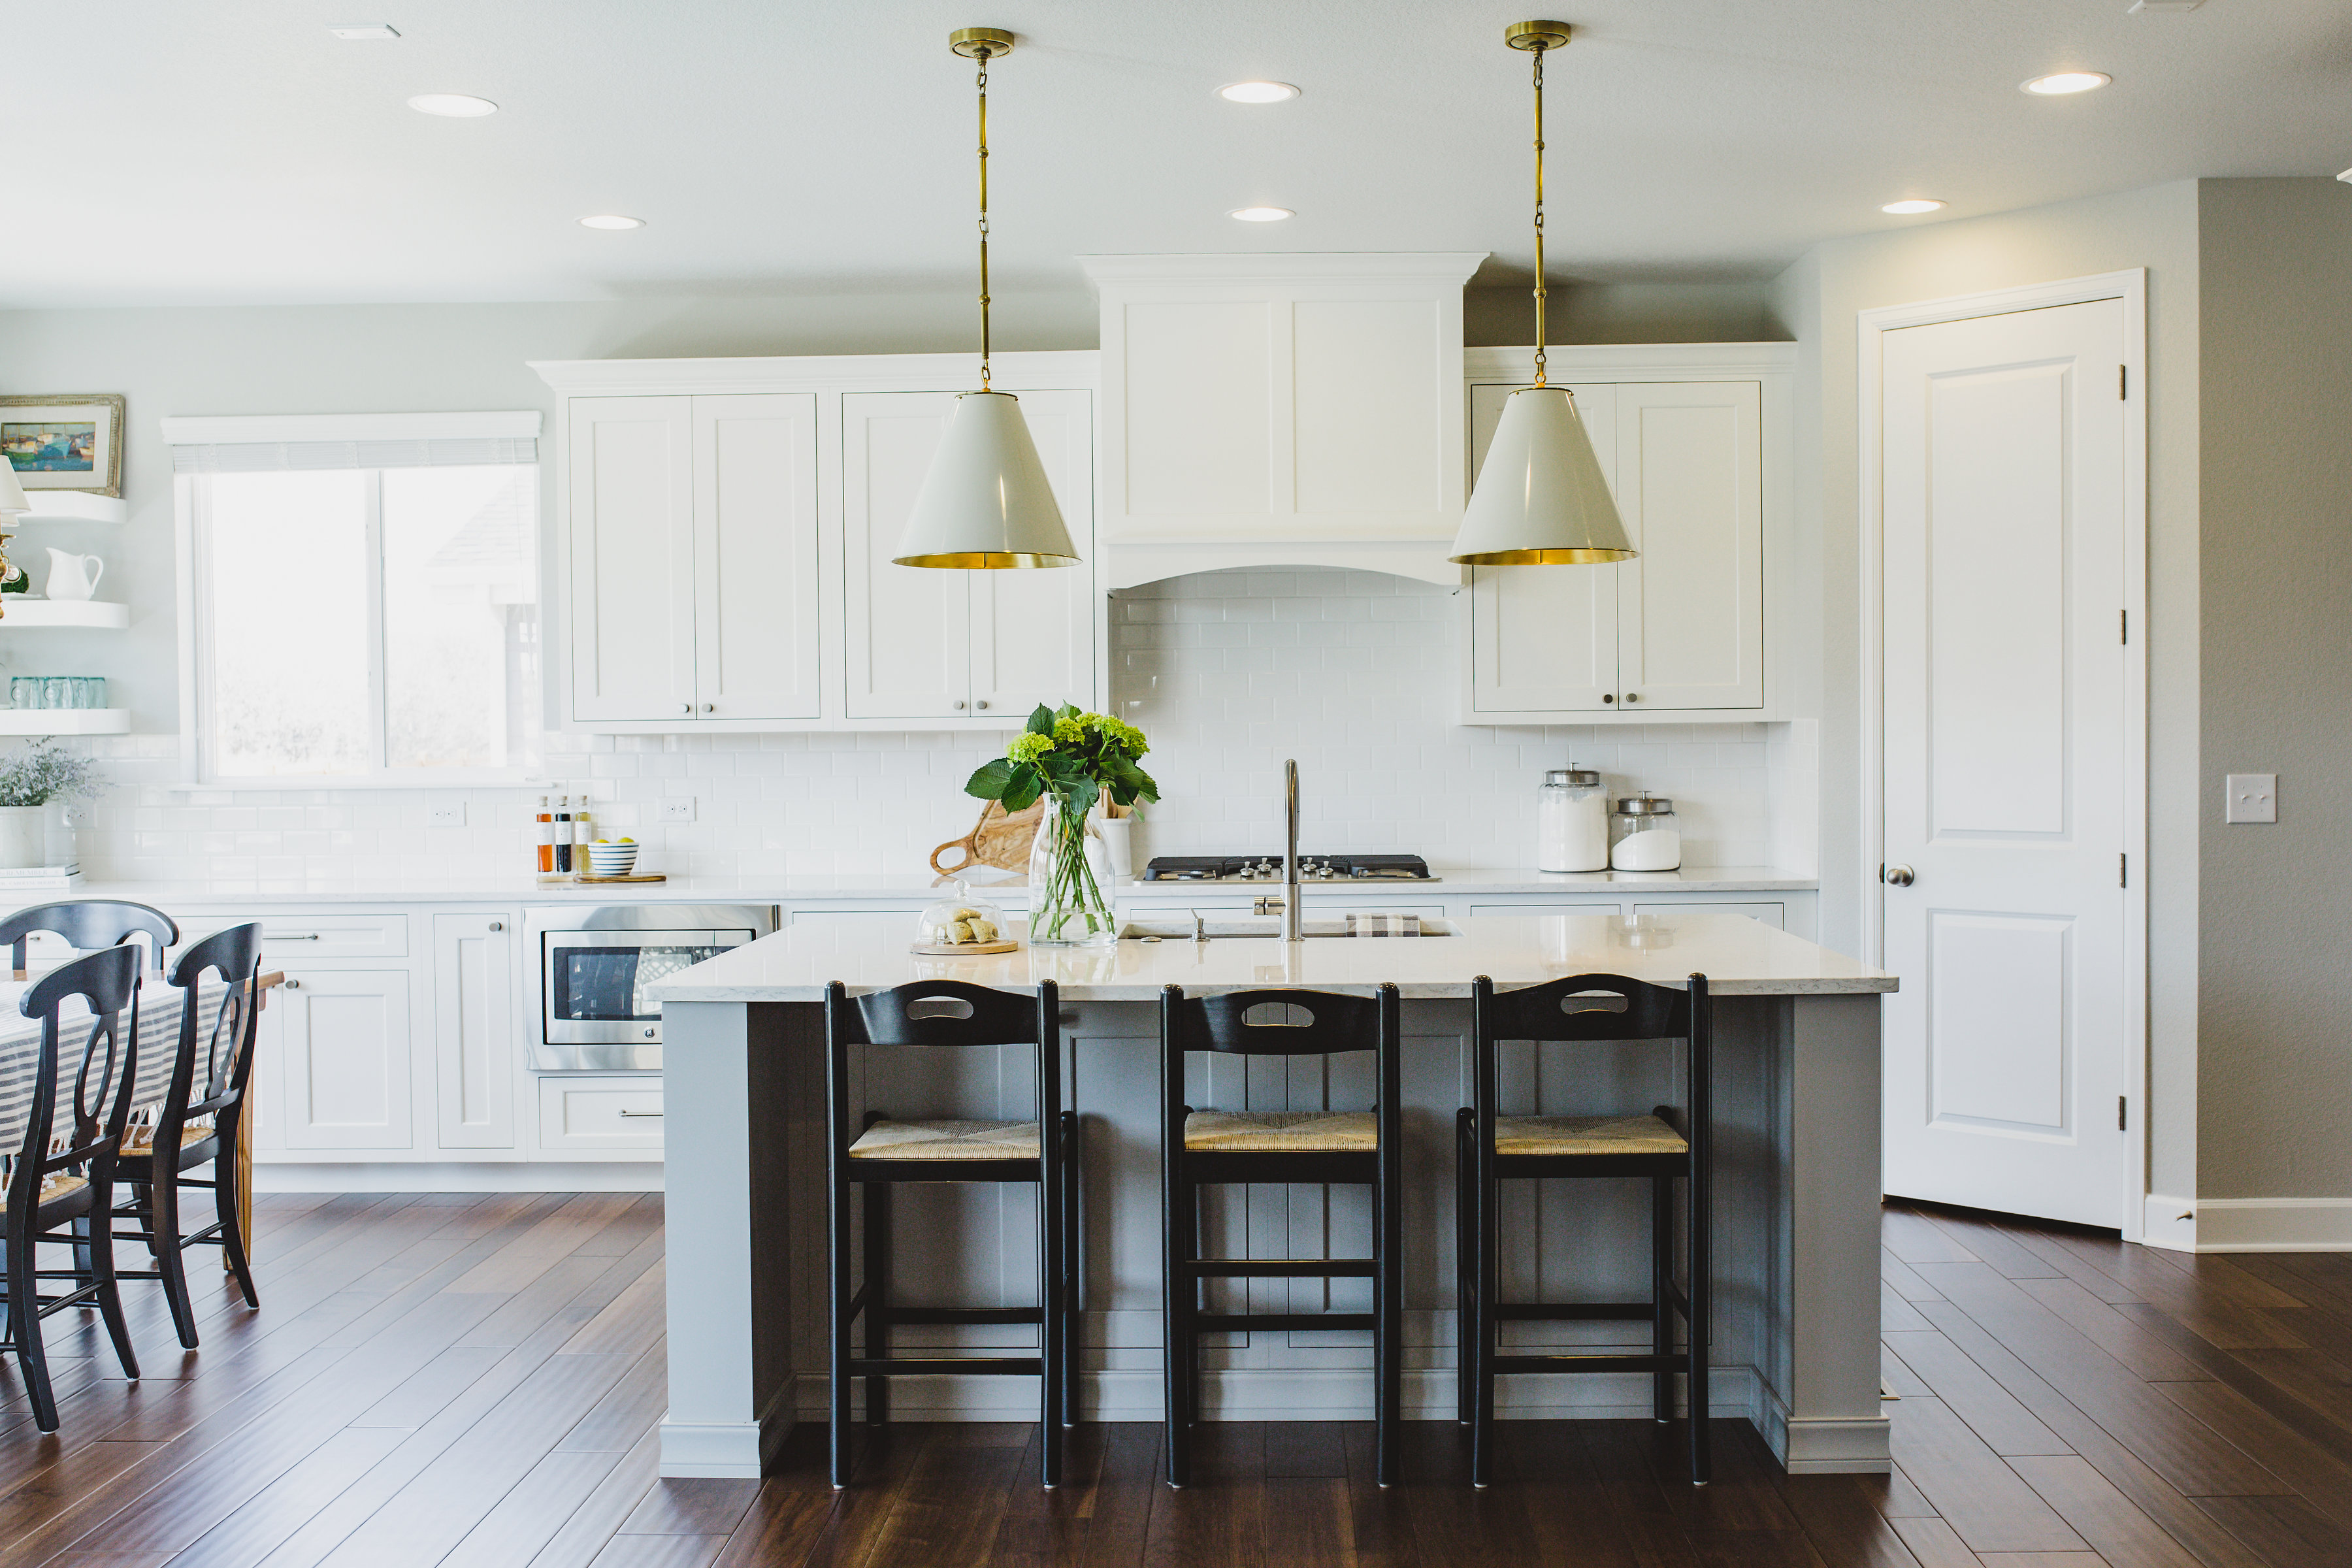 cheap quartz for solid cost cabinet corian countertops replacement backsplash cheapest discount inexpensive size countertop bathroom worktops installing new slab vanity tops decorative stone slate white taps surface of sinks faucet kitchen kitchens full and vs granite